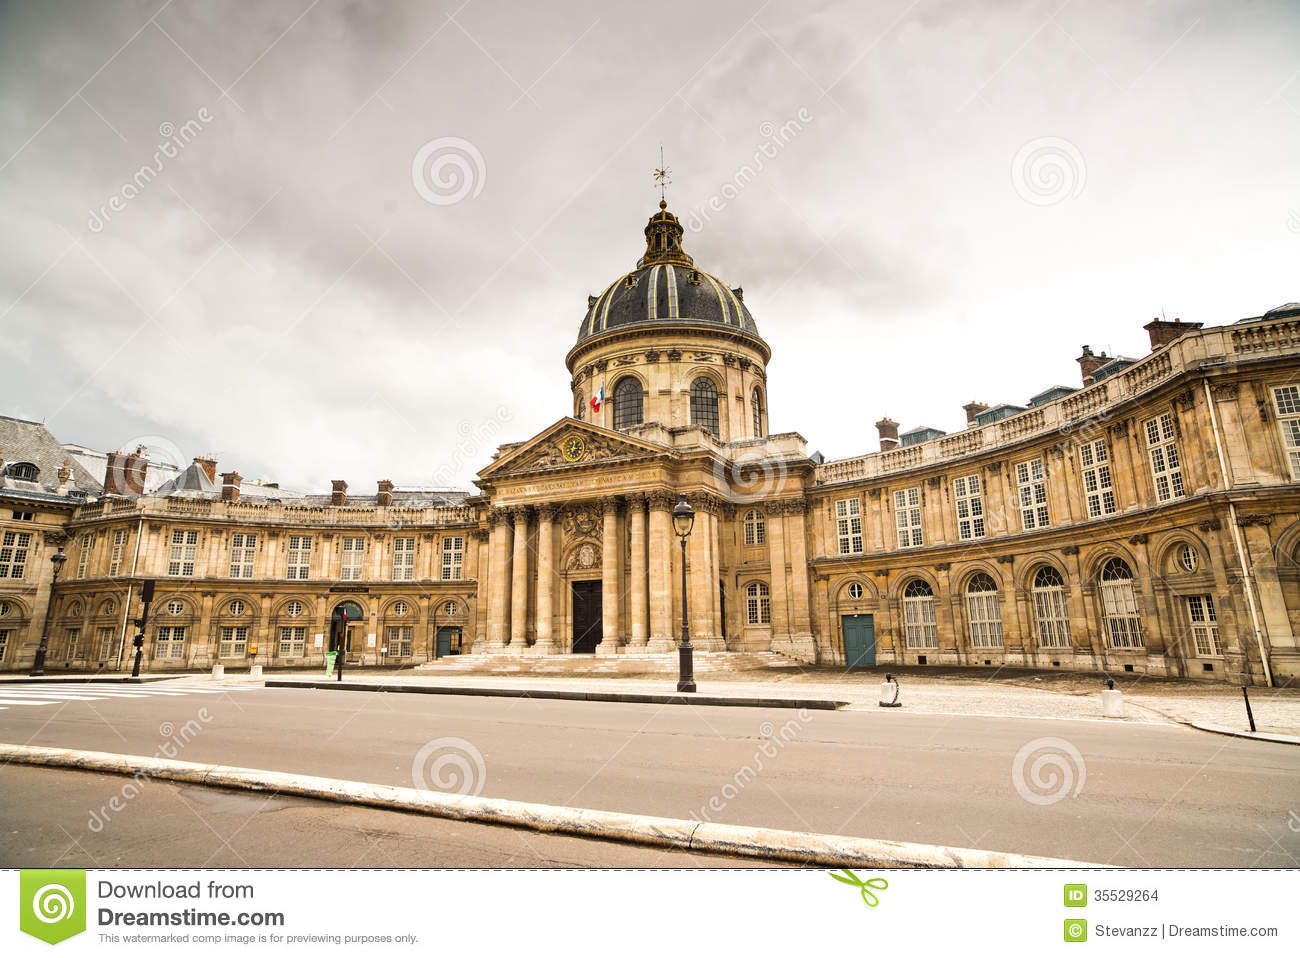 paris institut de france geb ude franz sische akademie von wissenschaften stockbilder bild. Black Bedroom Furniture Sets. Home Design Ideas